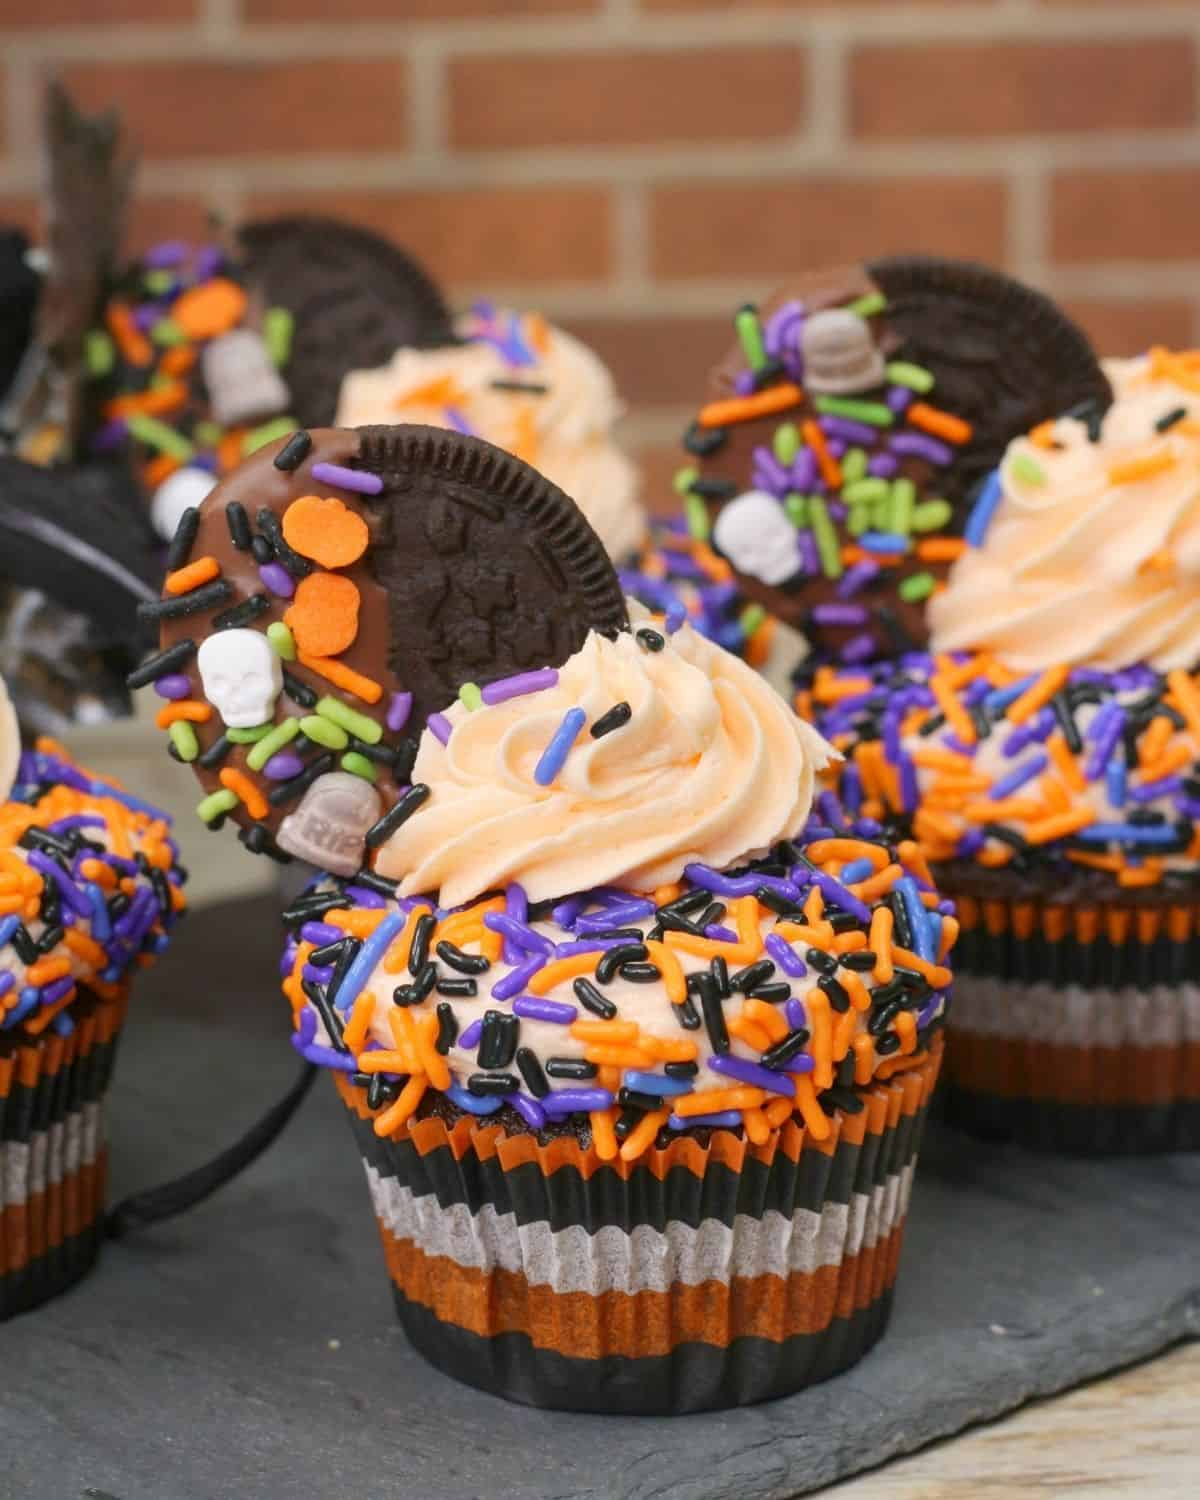 Halloween cupcakes decorated with festive oreos and icing with sprinkles.